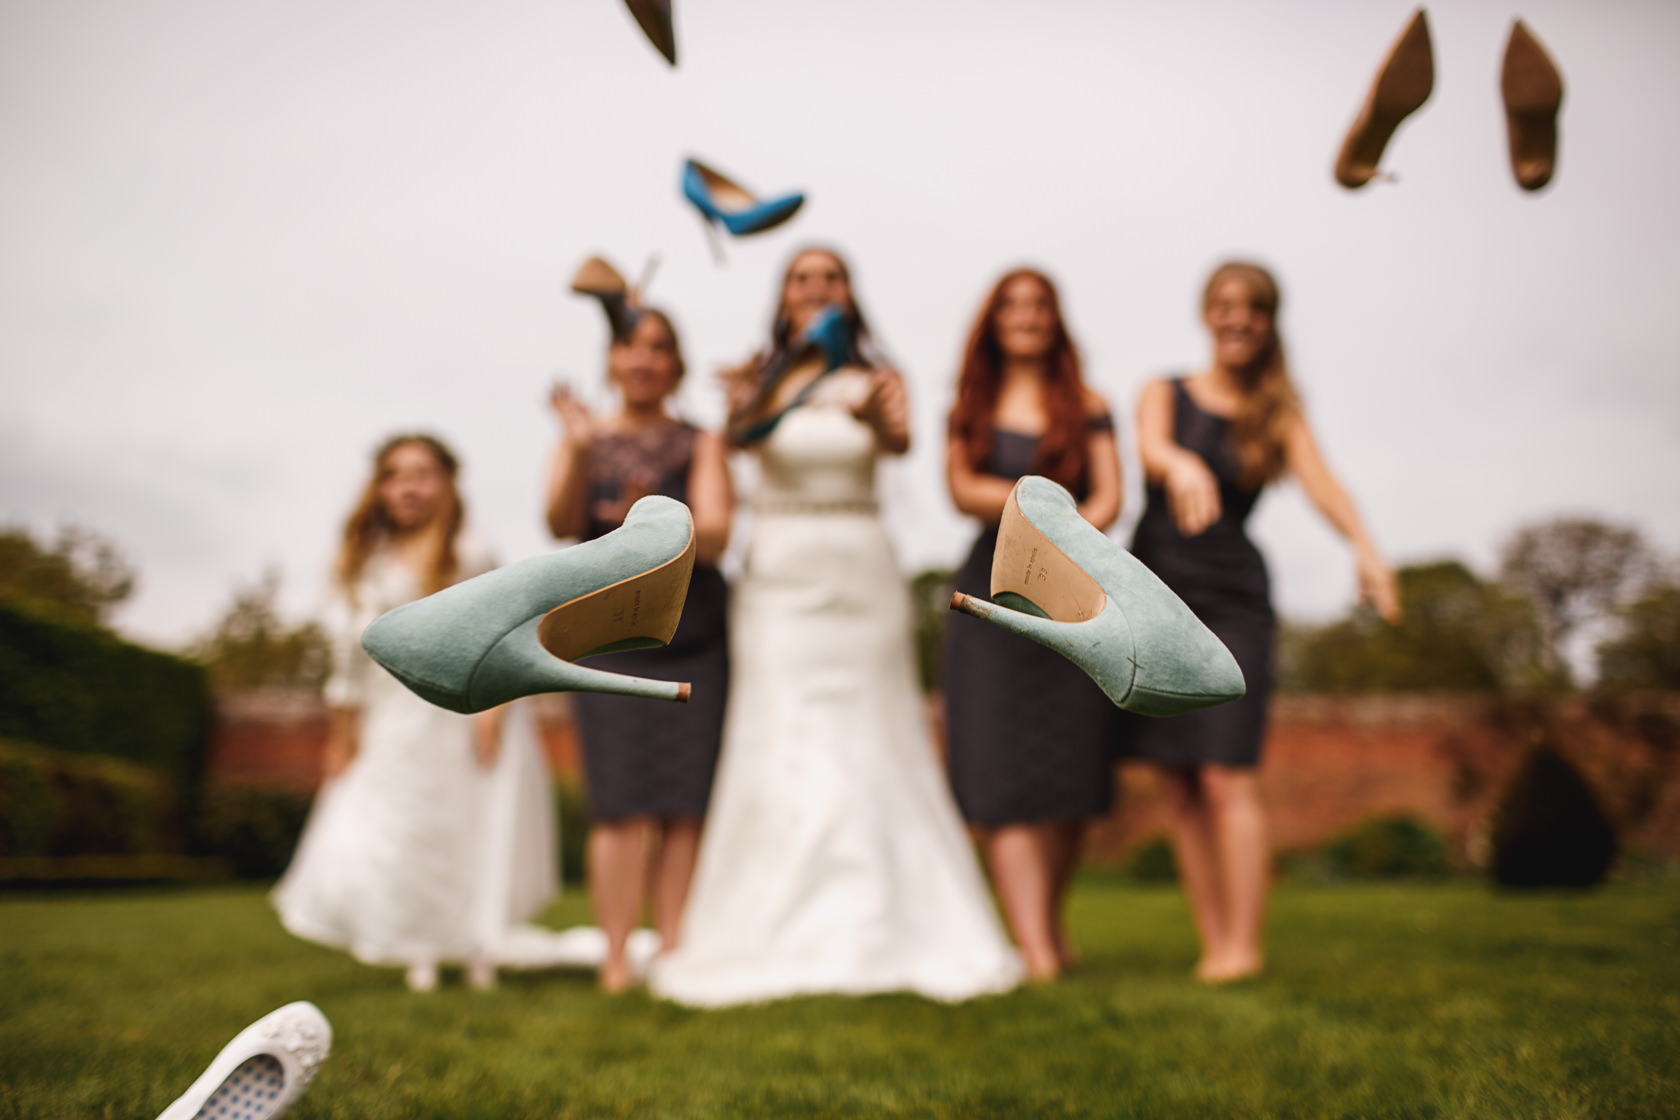 award winning wedding photo - ispwp summer 2014 award winner